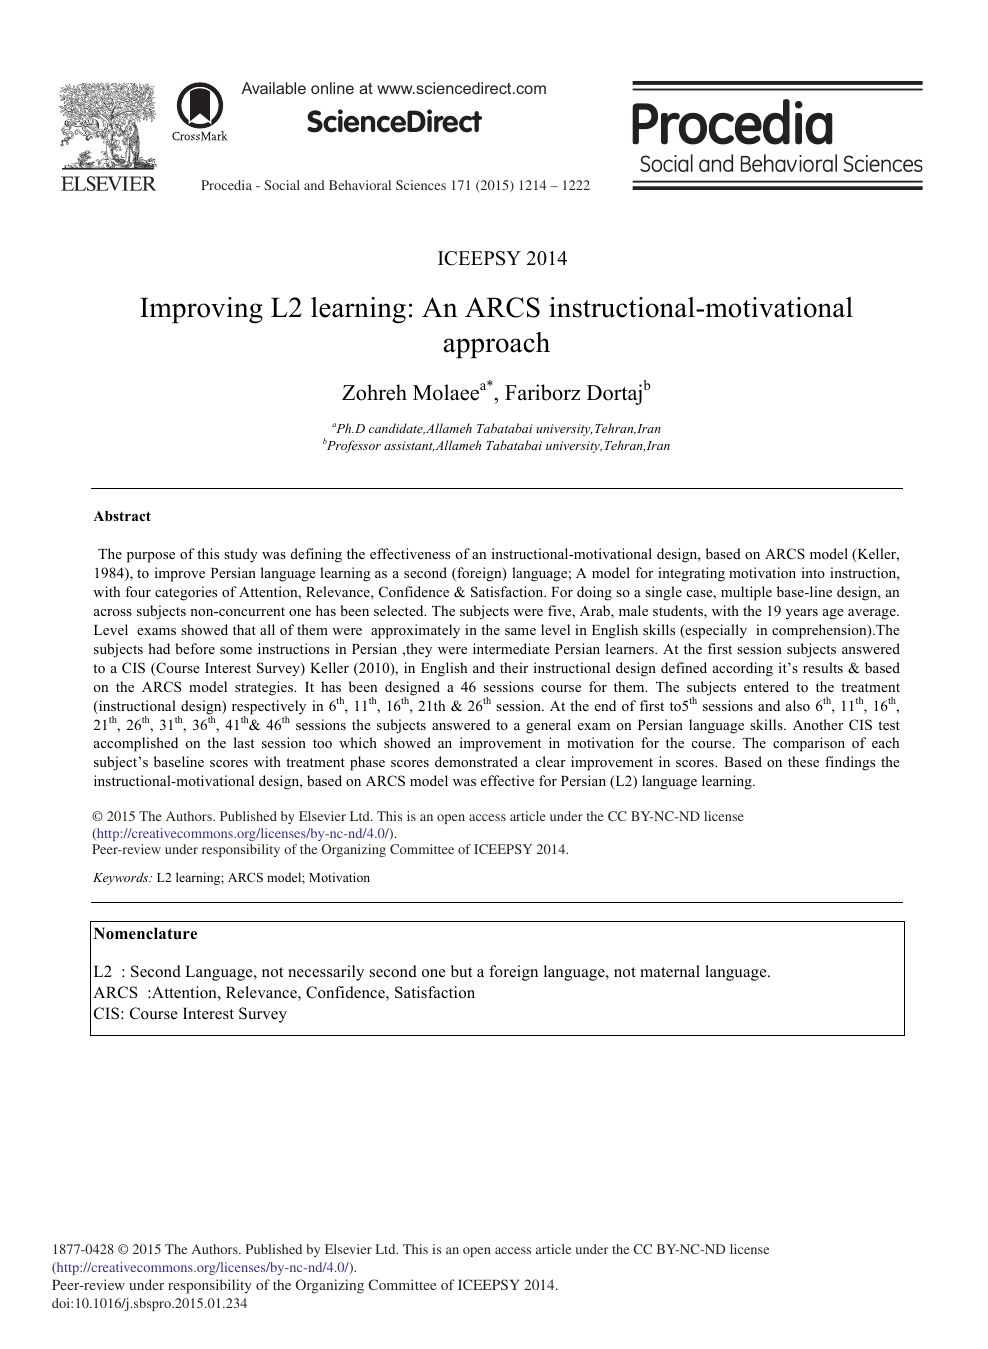 Improving L2 Learning An Arcs Instructional Motivational Approach Topic Of Research Paper In Educational Sciences Download Scholarly Article Pdf And Read For Free On Cyberleninka Open Science Hub